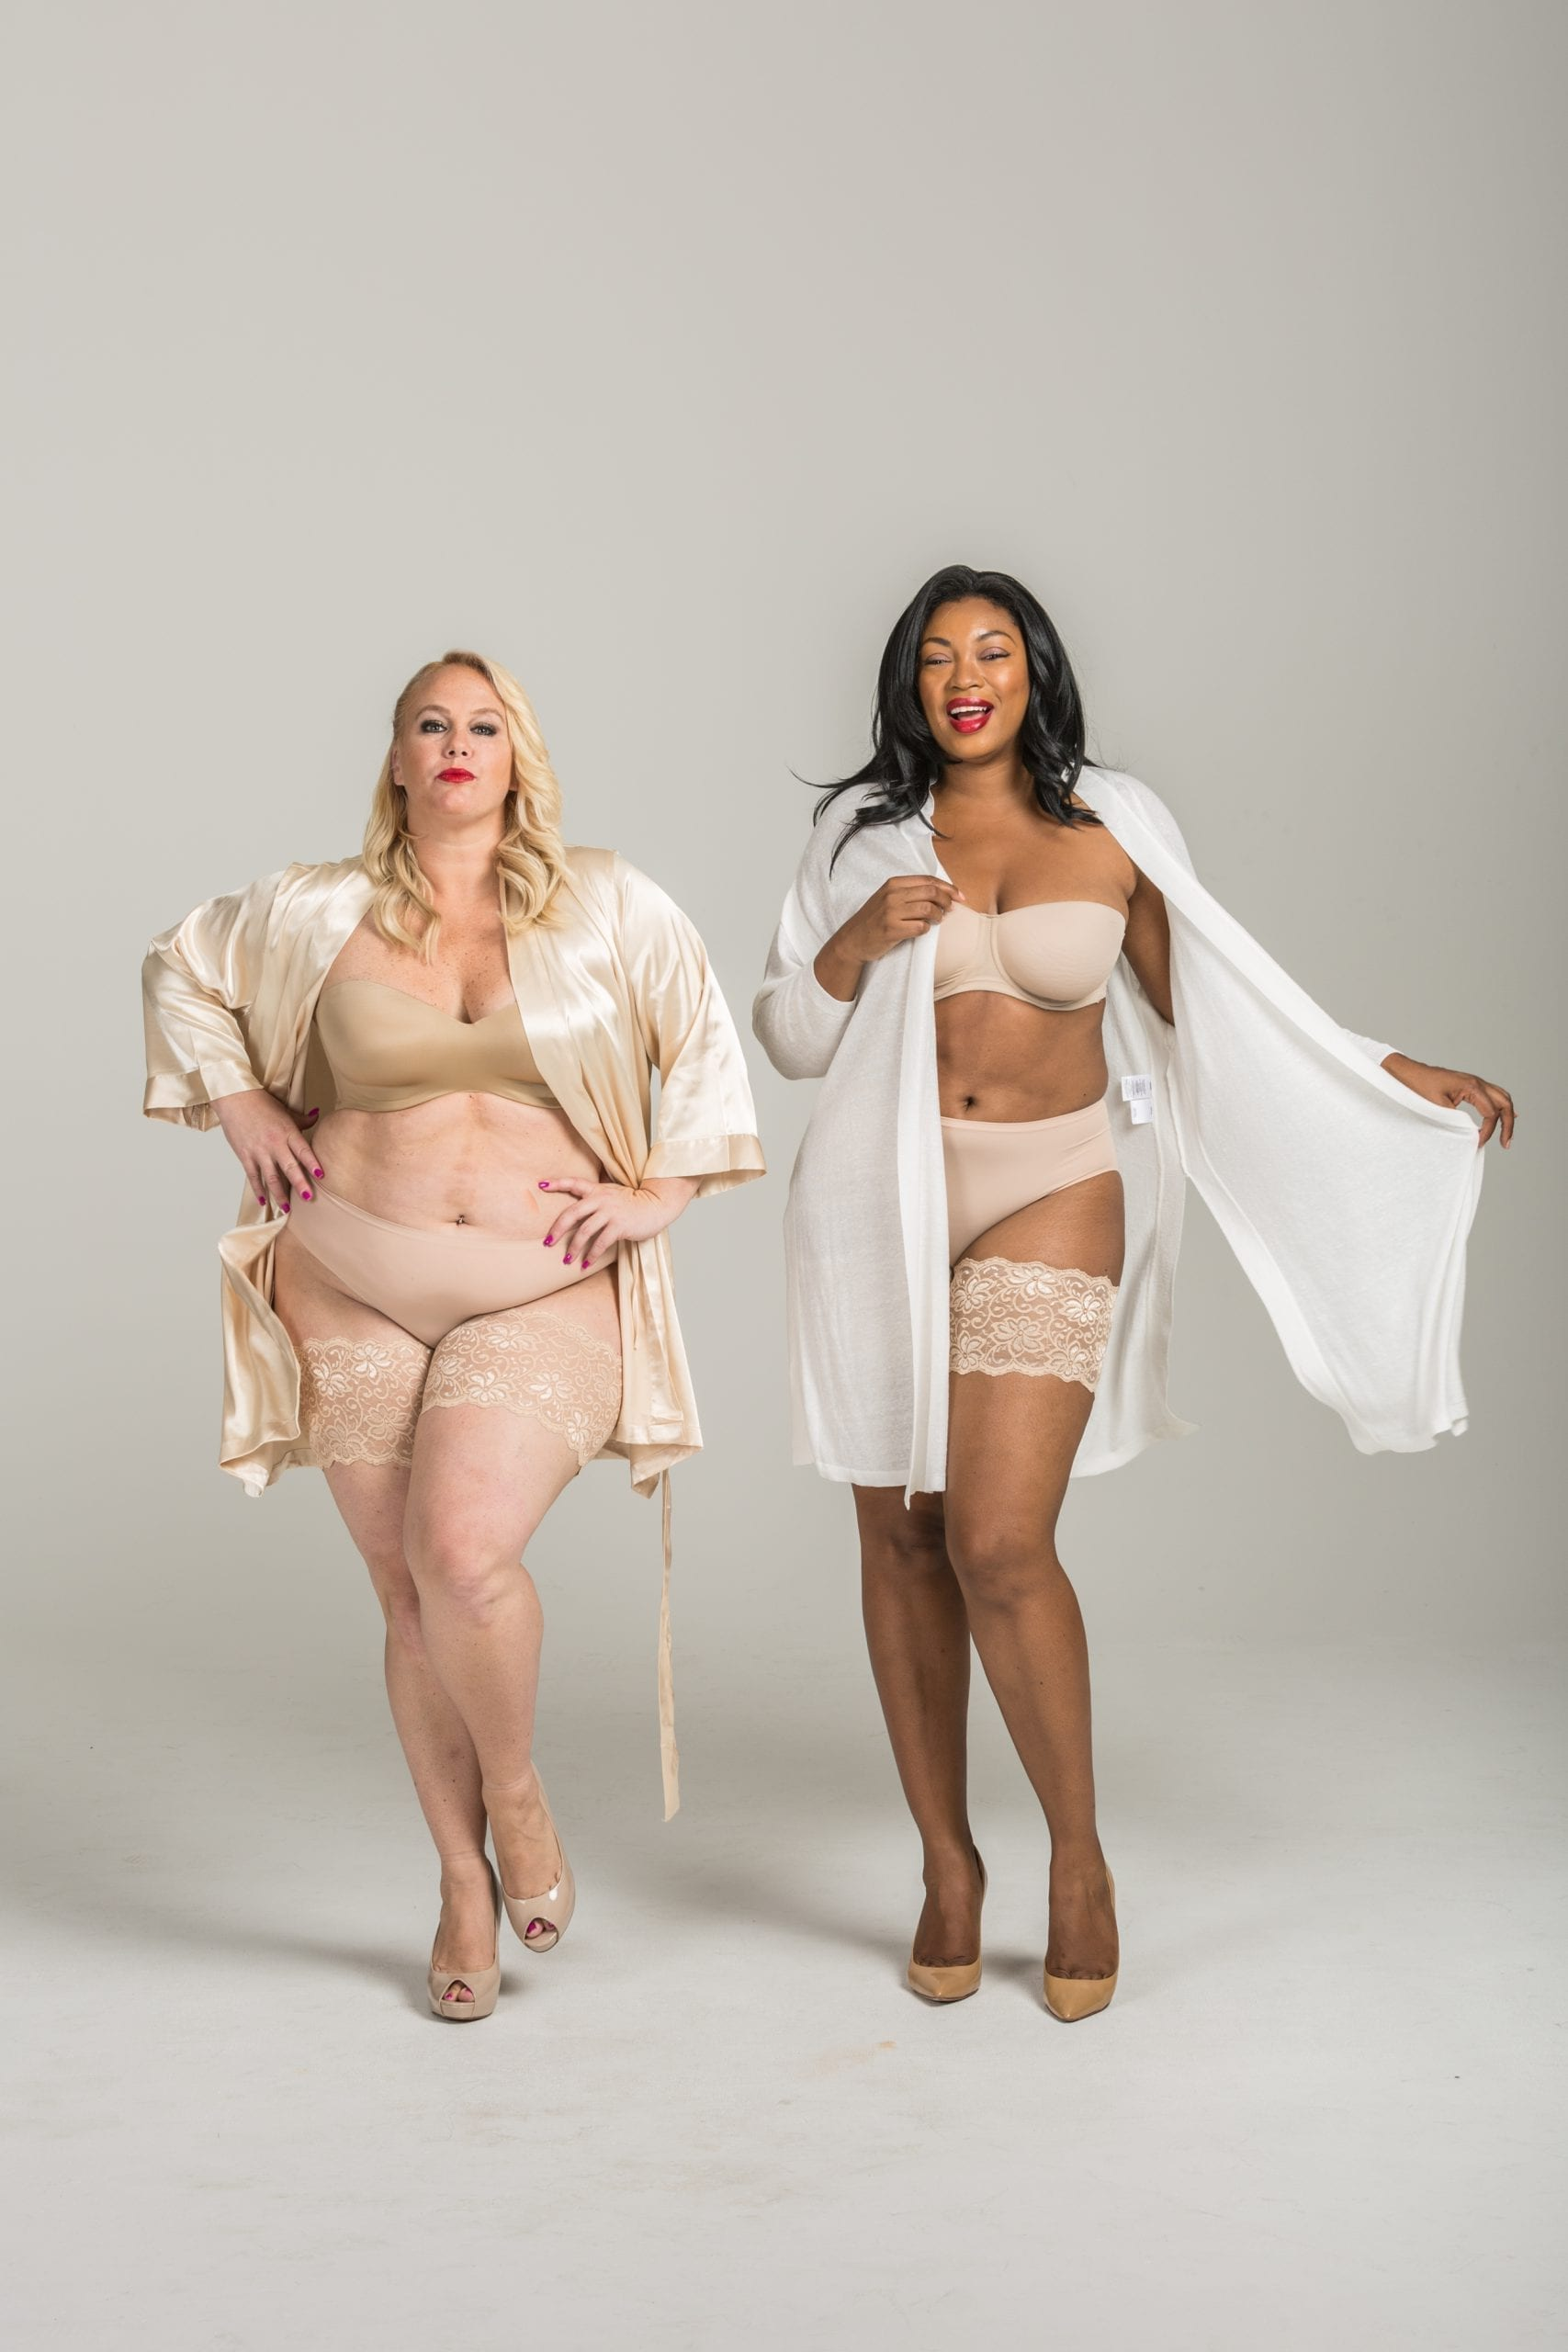 Gorgeous Bandelettes hug your curves and prevent chafing